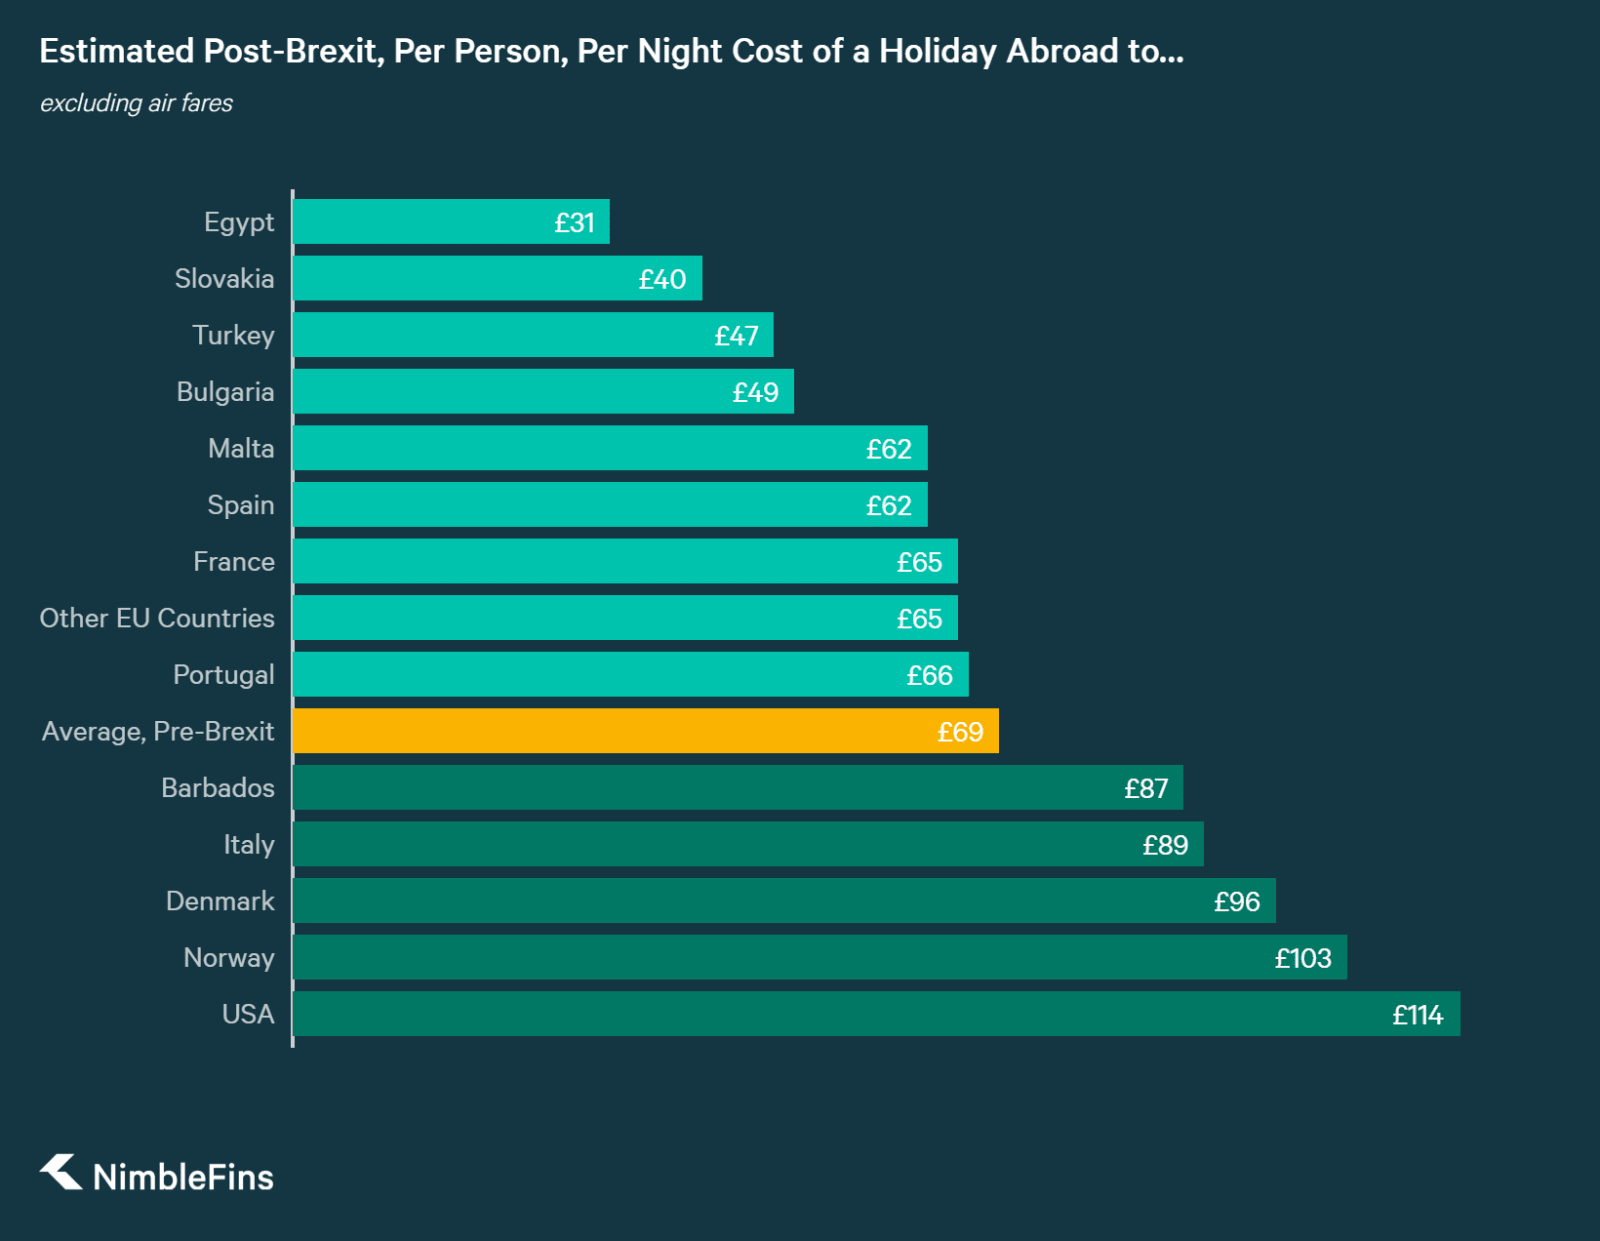 Chart showing the estimated daily costs of a holiday abroad to a number of different destinations from the UK